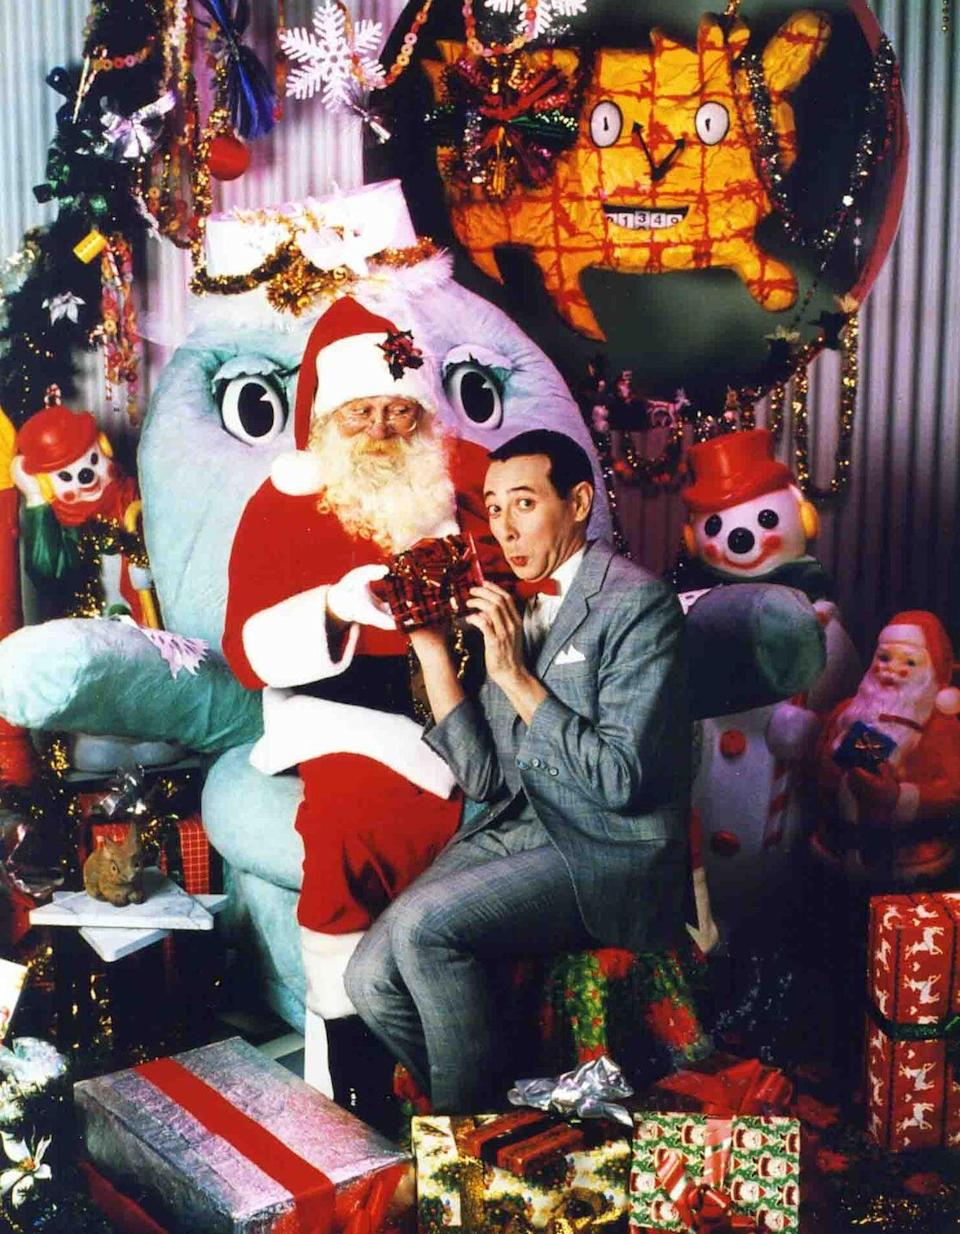 """<p>Pee-wee Herman and friends are celebrating Christmas at the playhouse, and everyone has their own set of traditions to share.</p><p><a class=""""link rapid-noclick-resp"""" href=""""https://www.netflix.com/title/80023921"""" rel=""""nofollow noopener"""" target=""""_blank"""" data-ylk=""""slk:STREAM NOW"""">STREAM NOW</a></p>"""